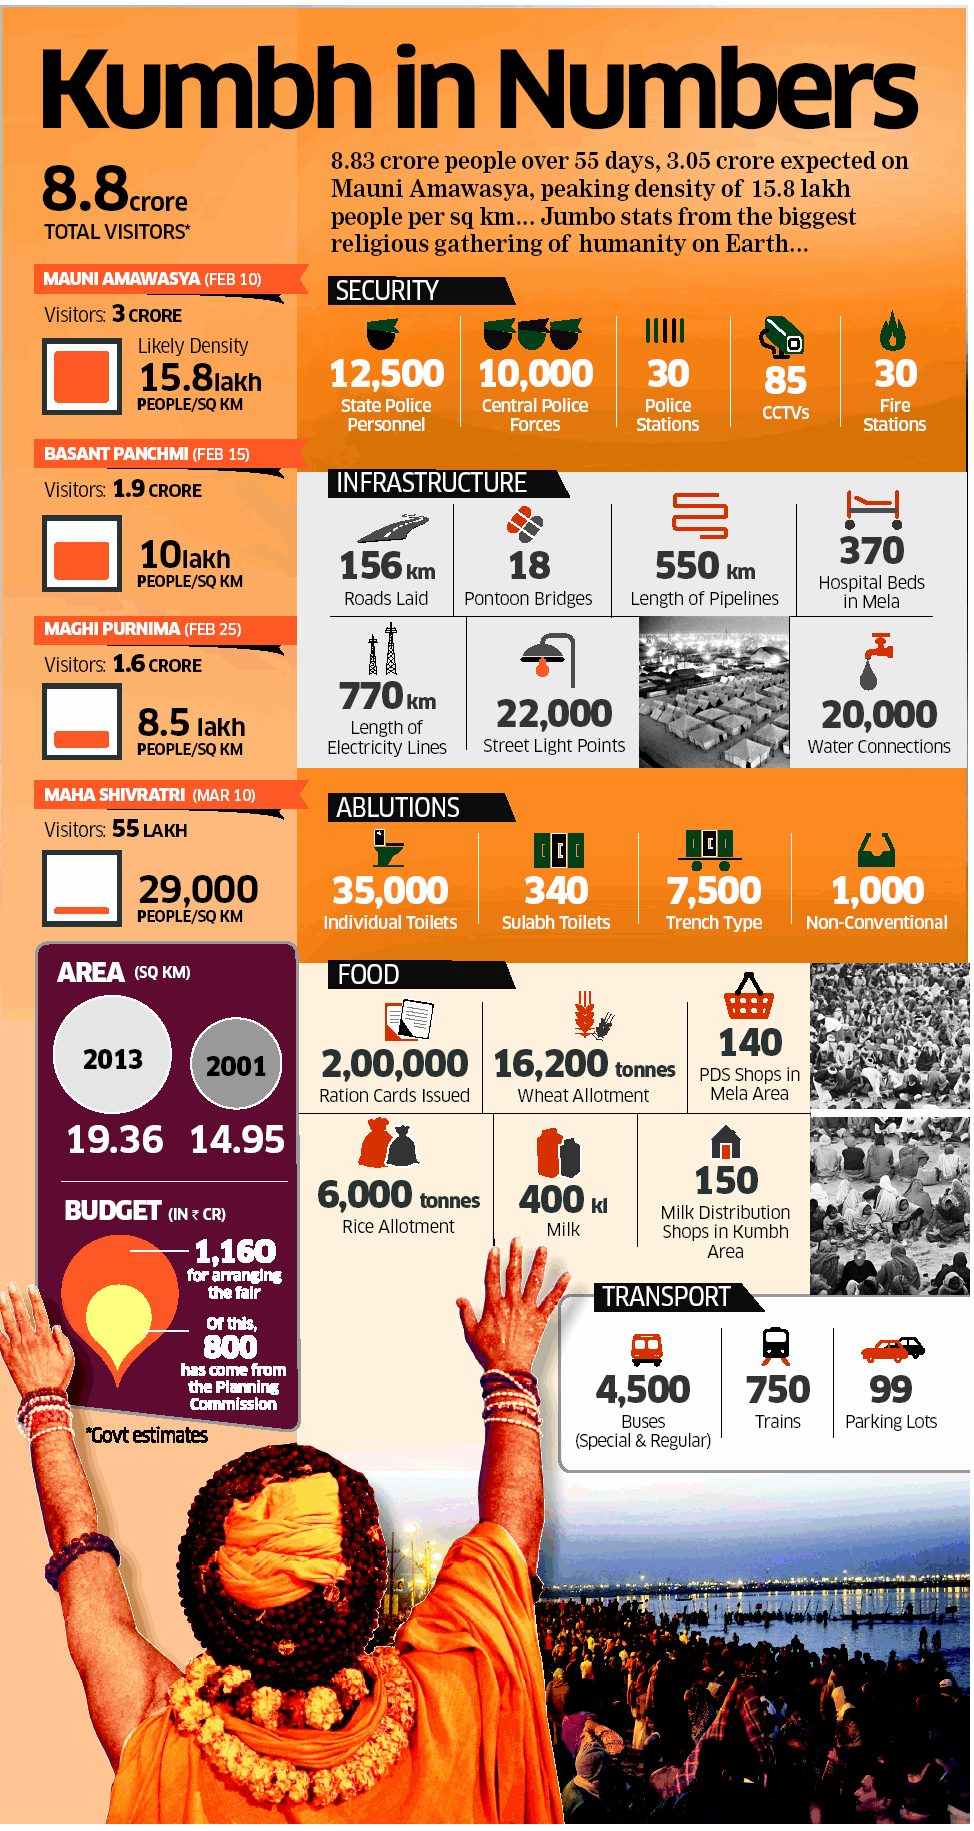 Mahakumbh in numbers